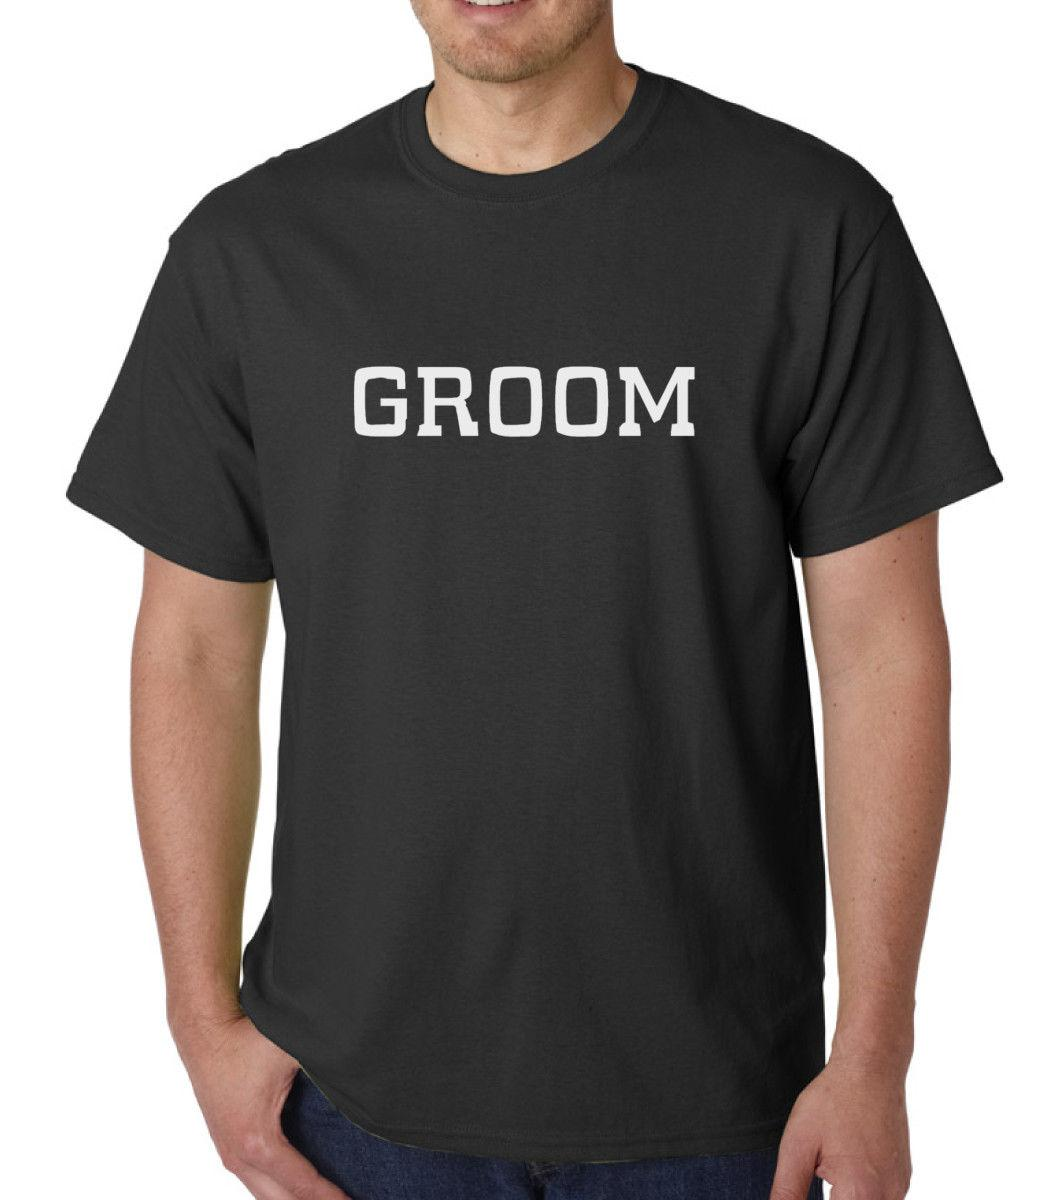 details zu groom t shirt funny marriage tee wedding bachelor party bridal shower t shirt funny unisex tee funny printed shirts cool tee shirts designs from